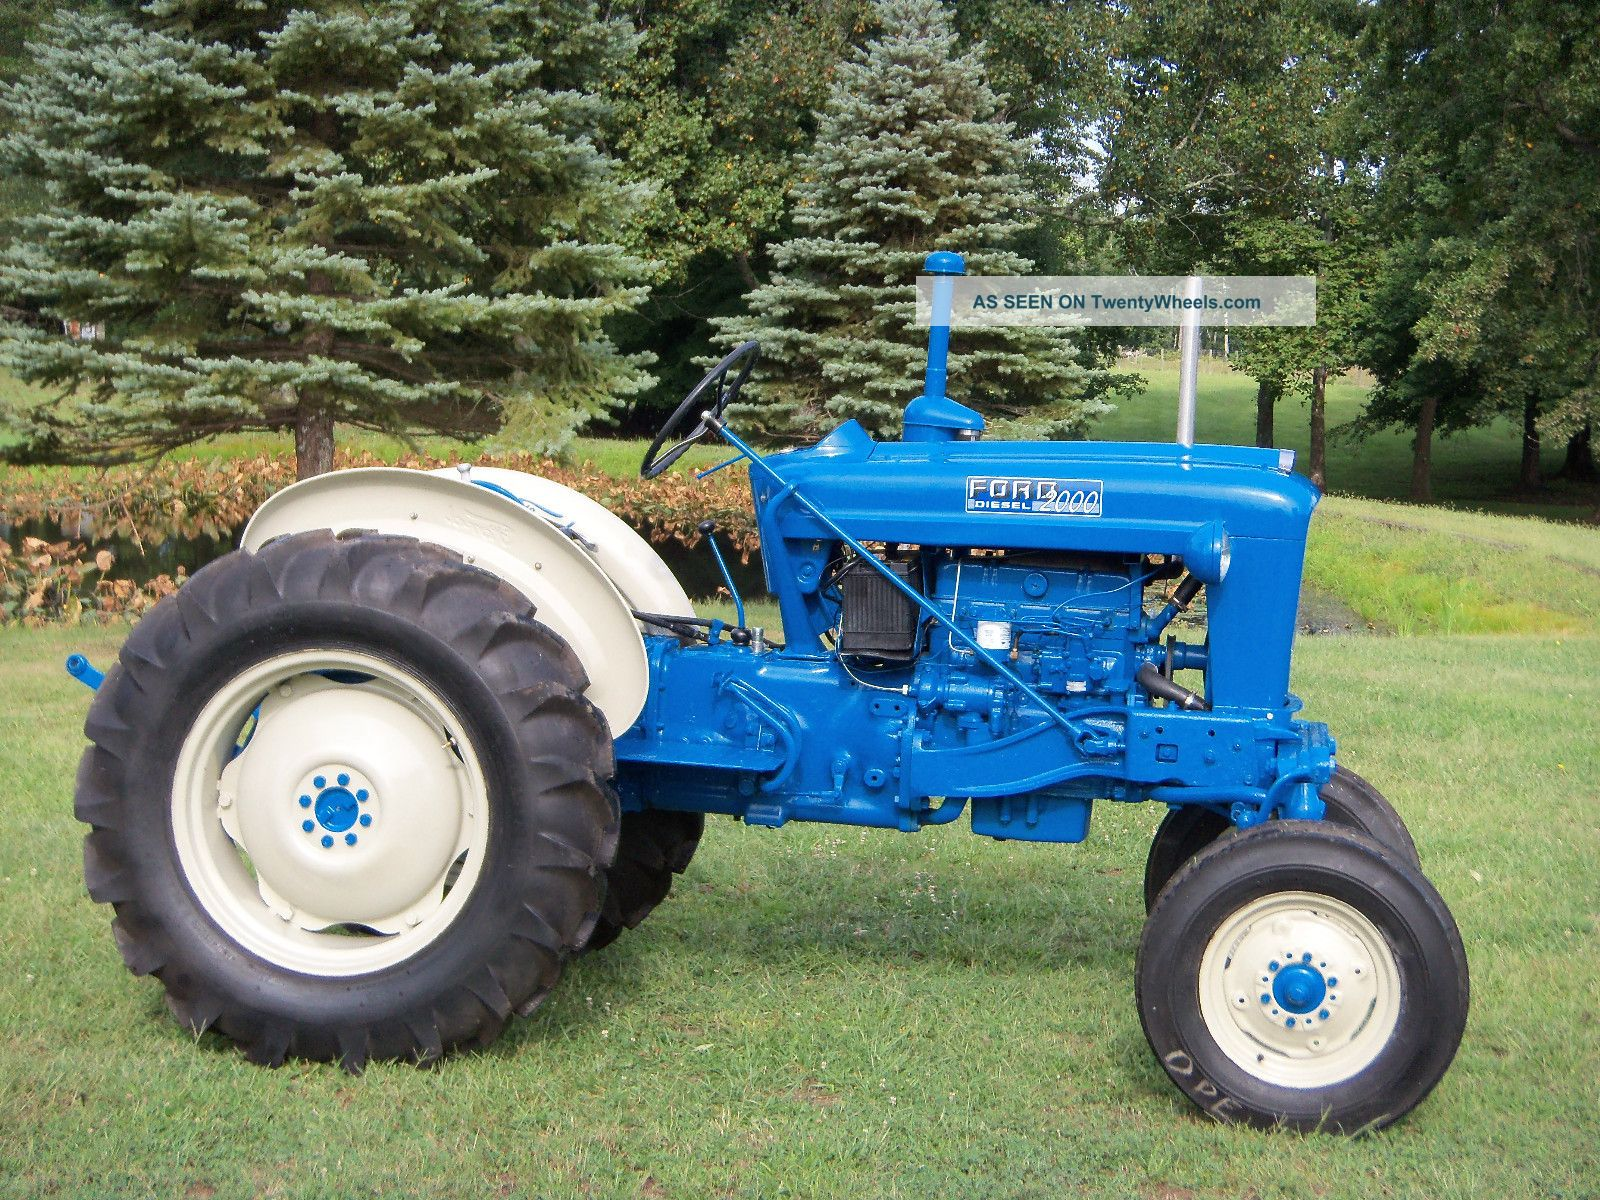 2000 Ford Tractor Information : Ford offset tractor diesel restored